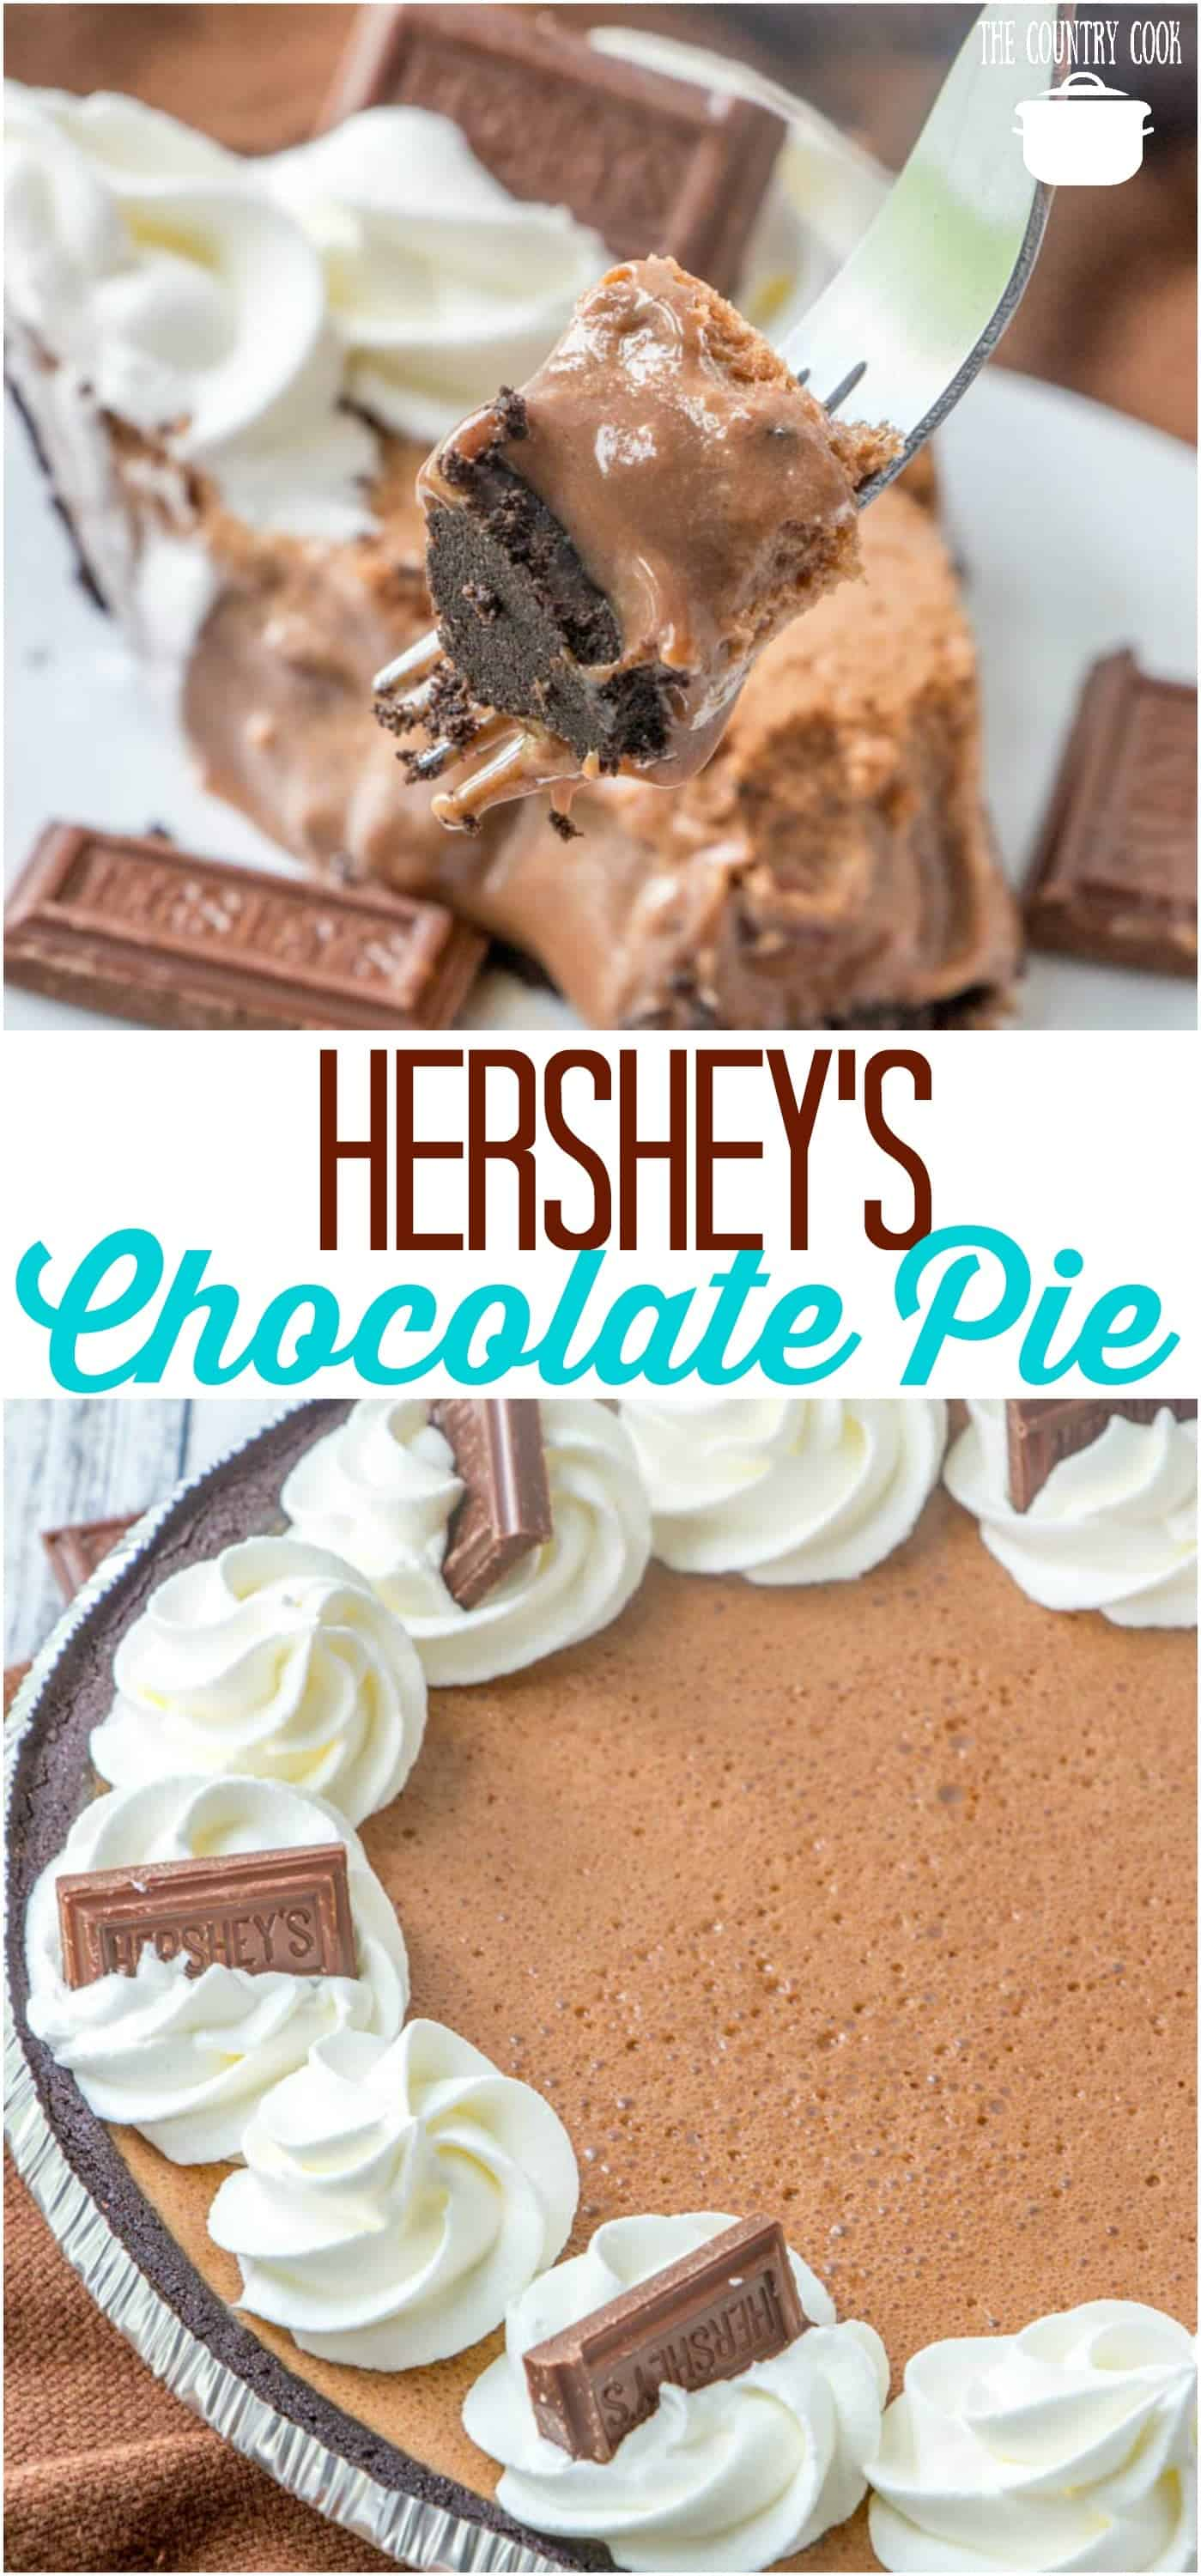 Hershey's Chocolate Pie recipe from The Country Cook #chocolate #pie #nobake #marshmallows #dessert #desserts #recipe #recipes #ideas